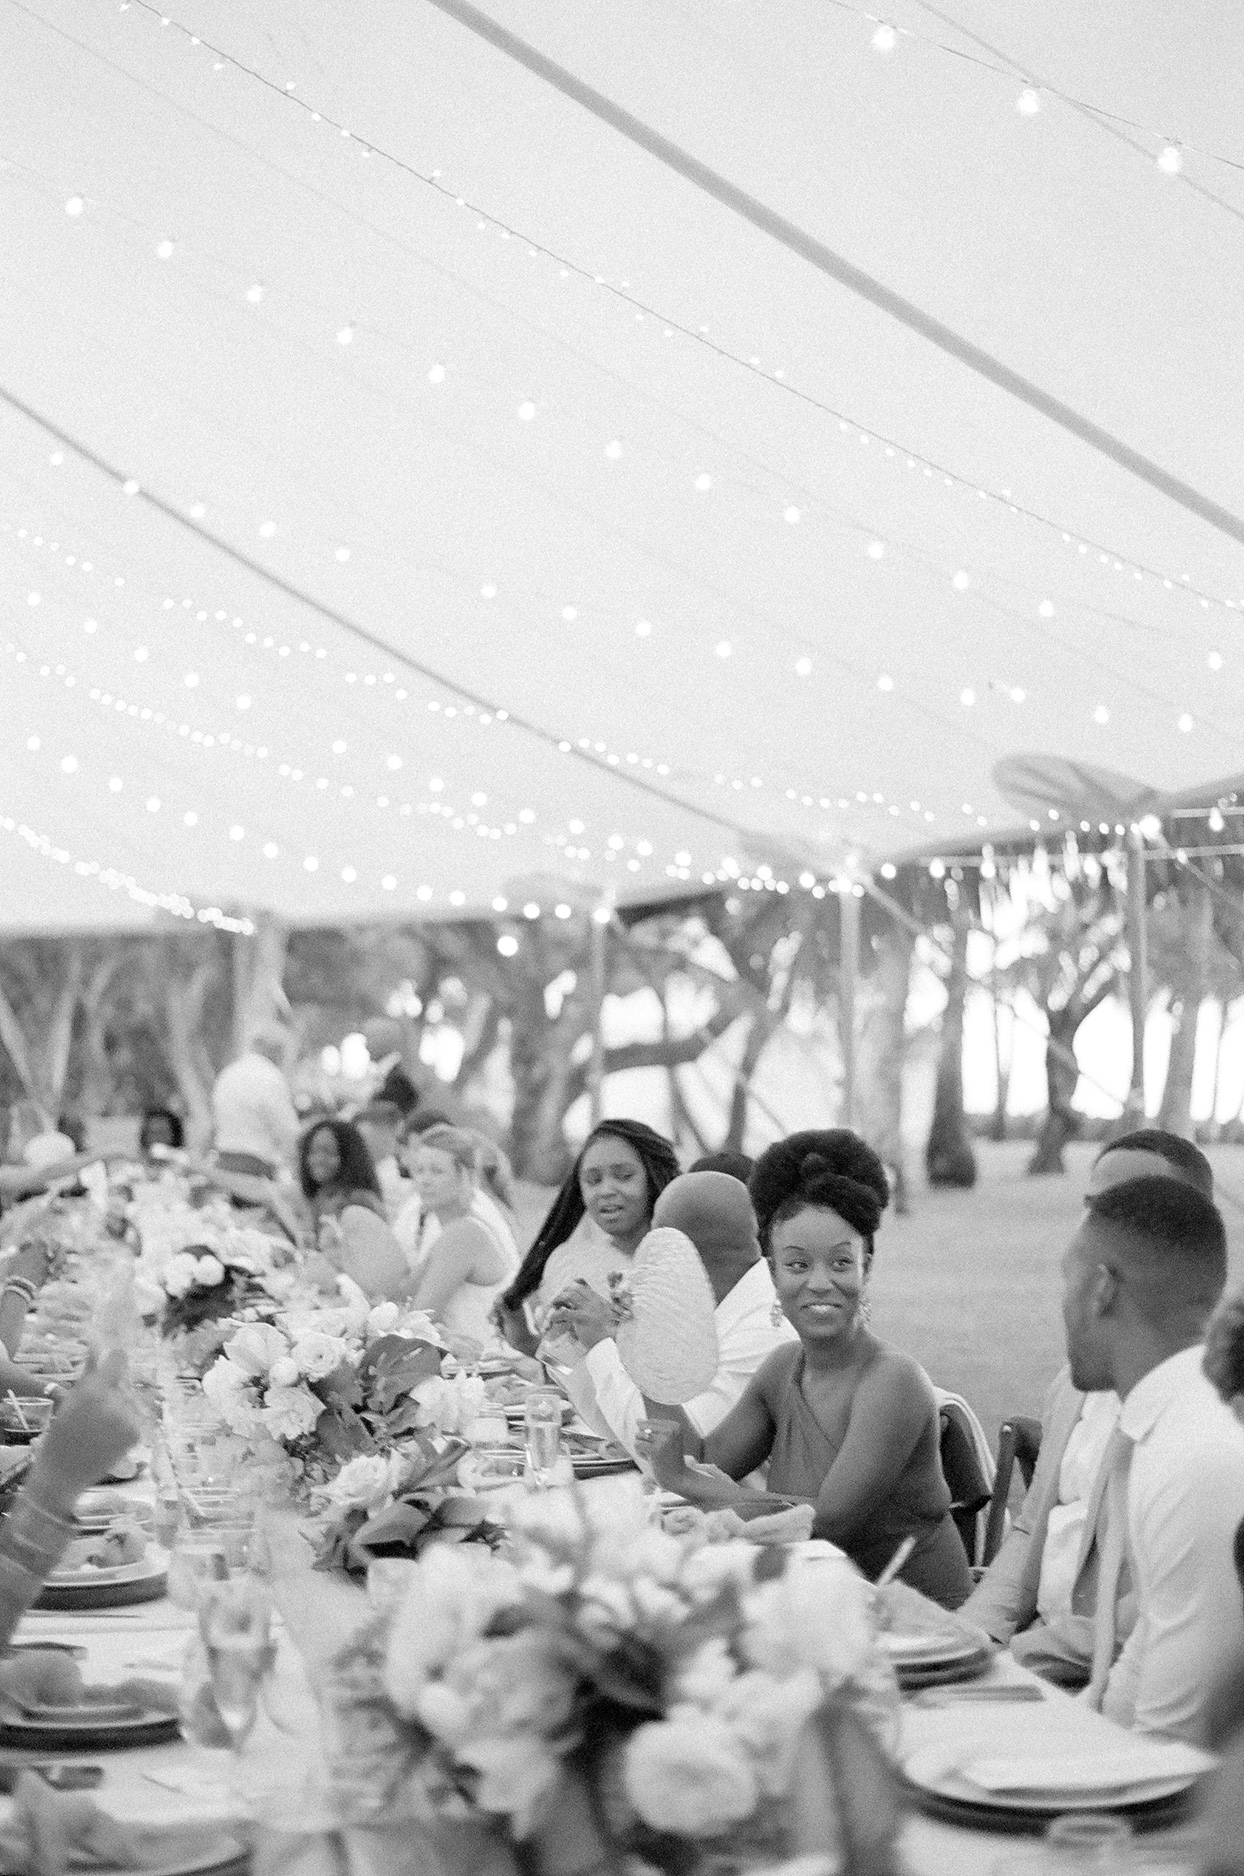 vanessa nathan wedding reception guests at long table during dinner